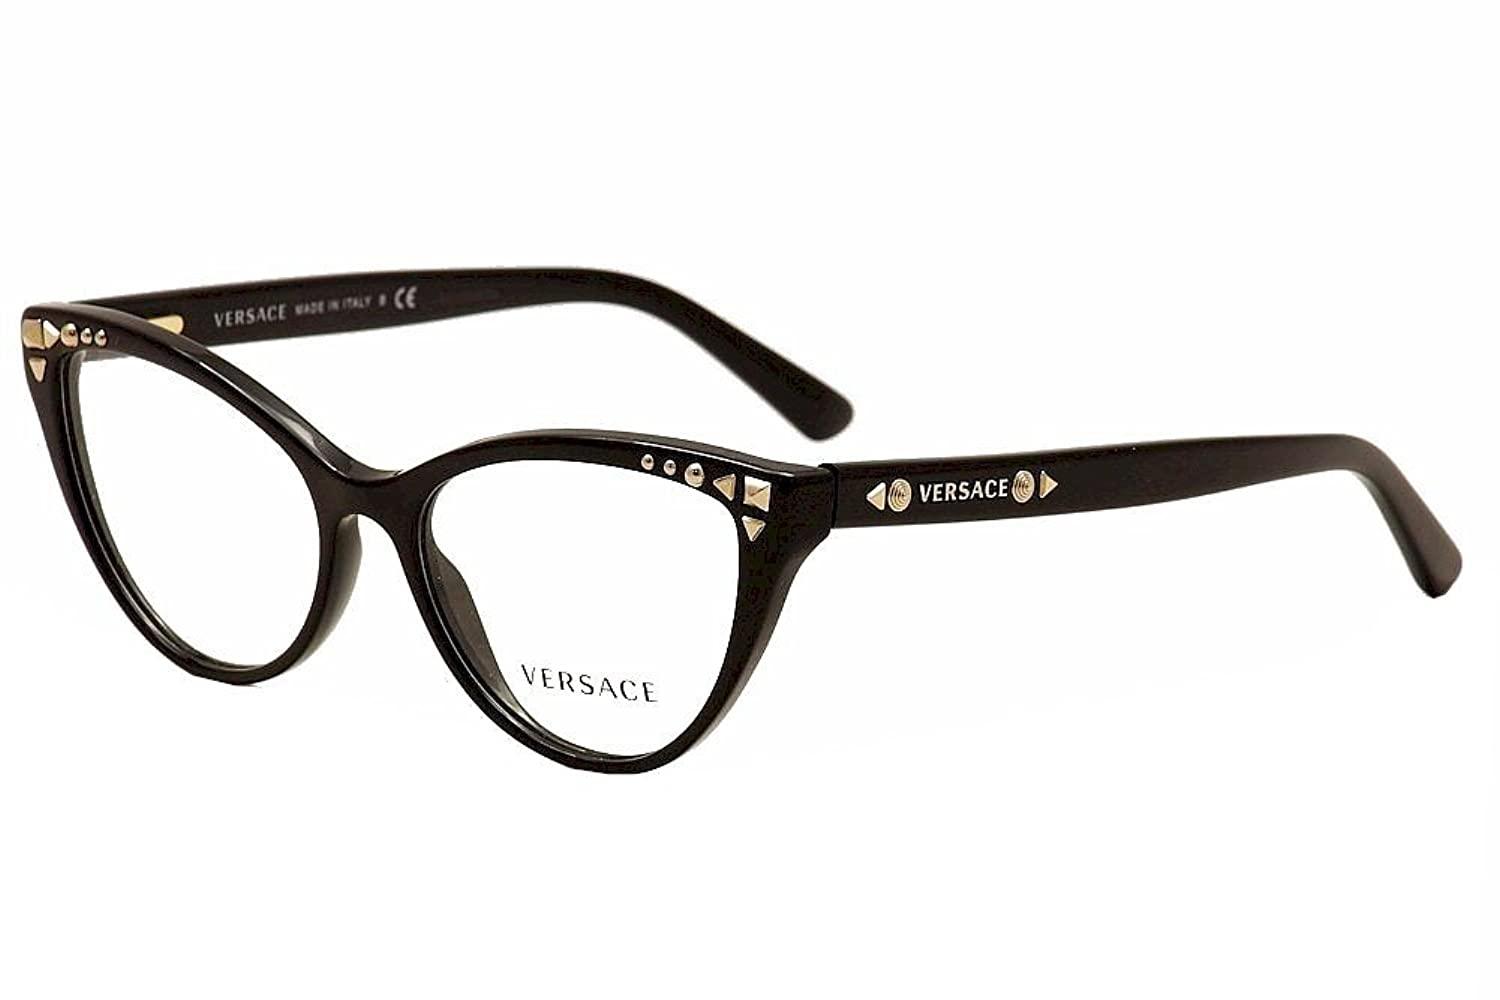 amazoncom versace ve3191 eyeglasses gb1 black 52mm shoes